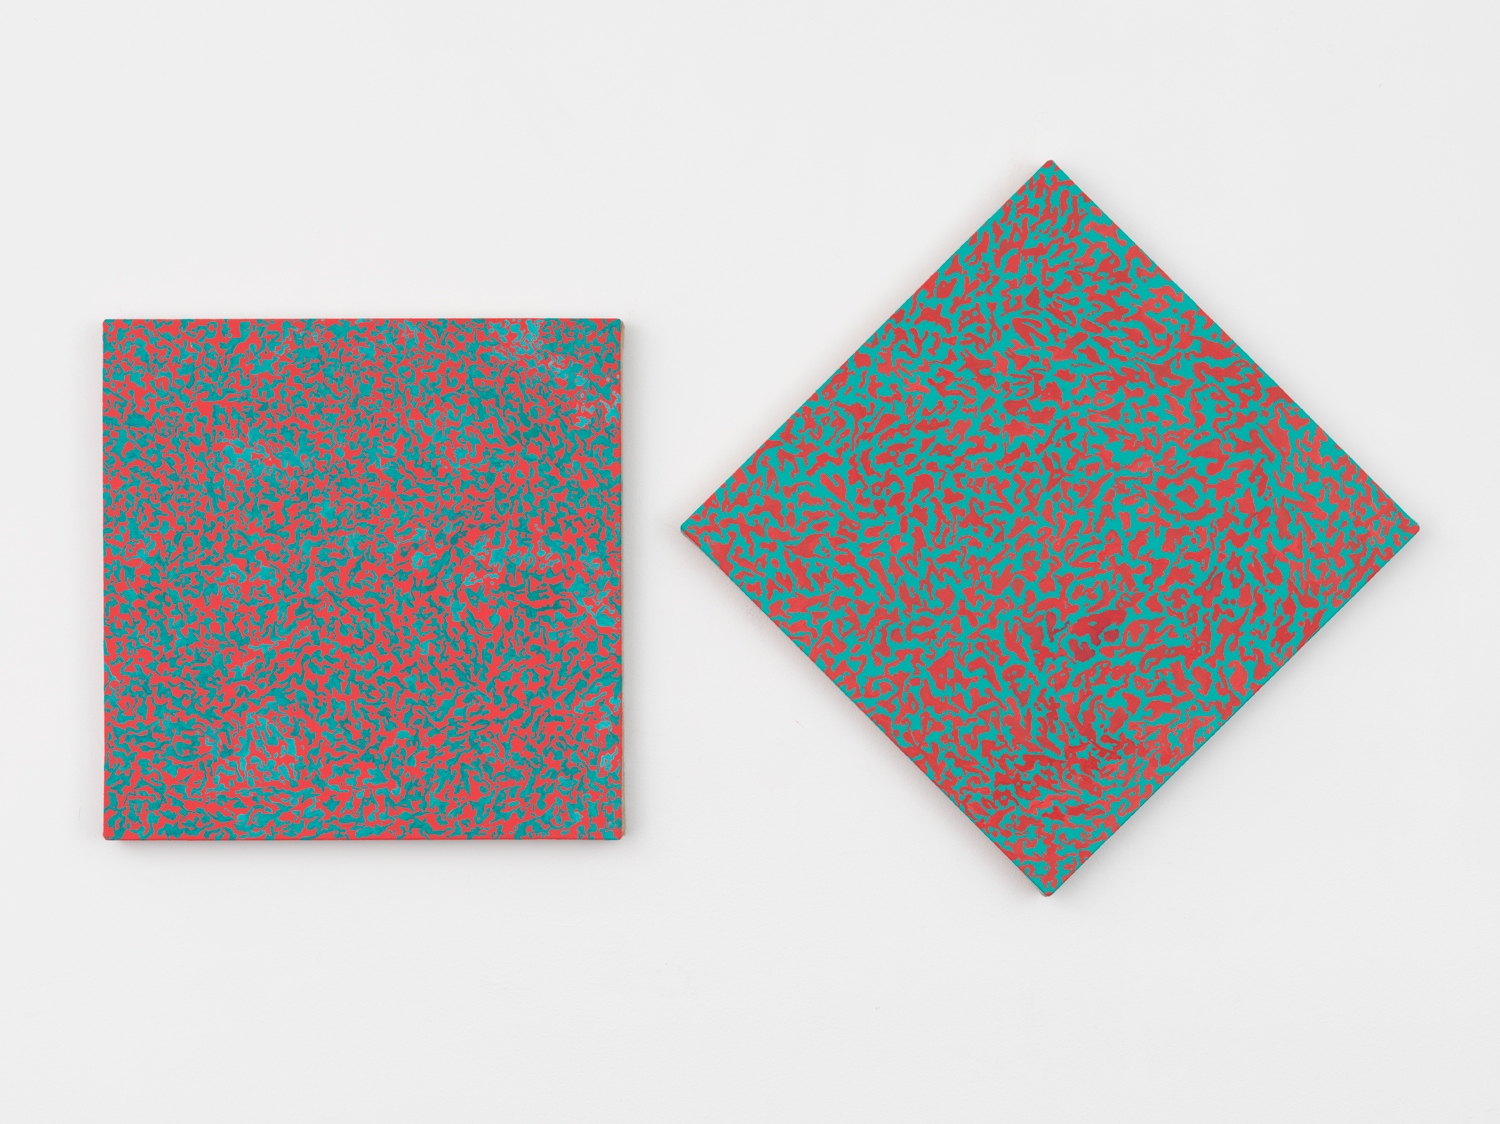 """Nora Griffin, Quinacridone (diptych), 2017, Oil on linen, 2 parts, Each 16 x 16"""""""